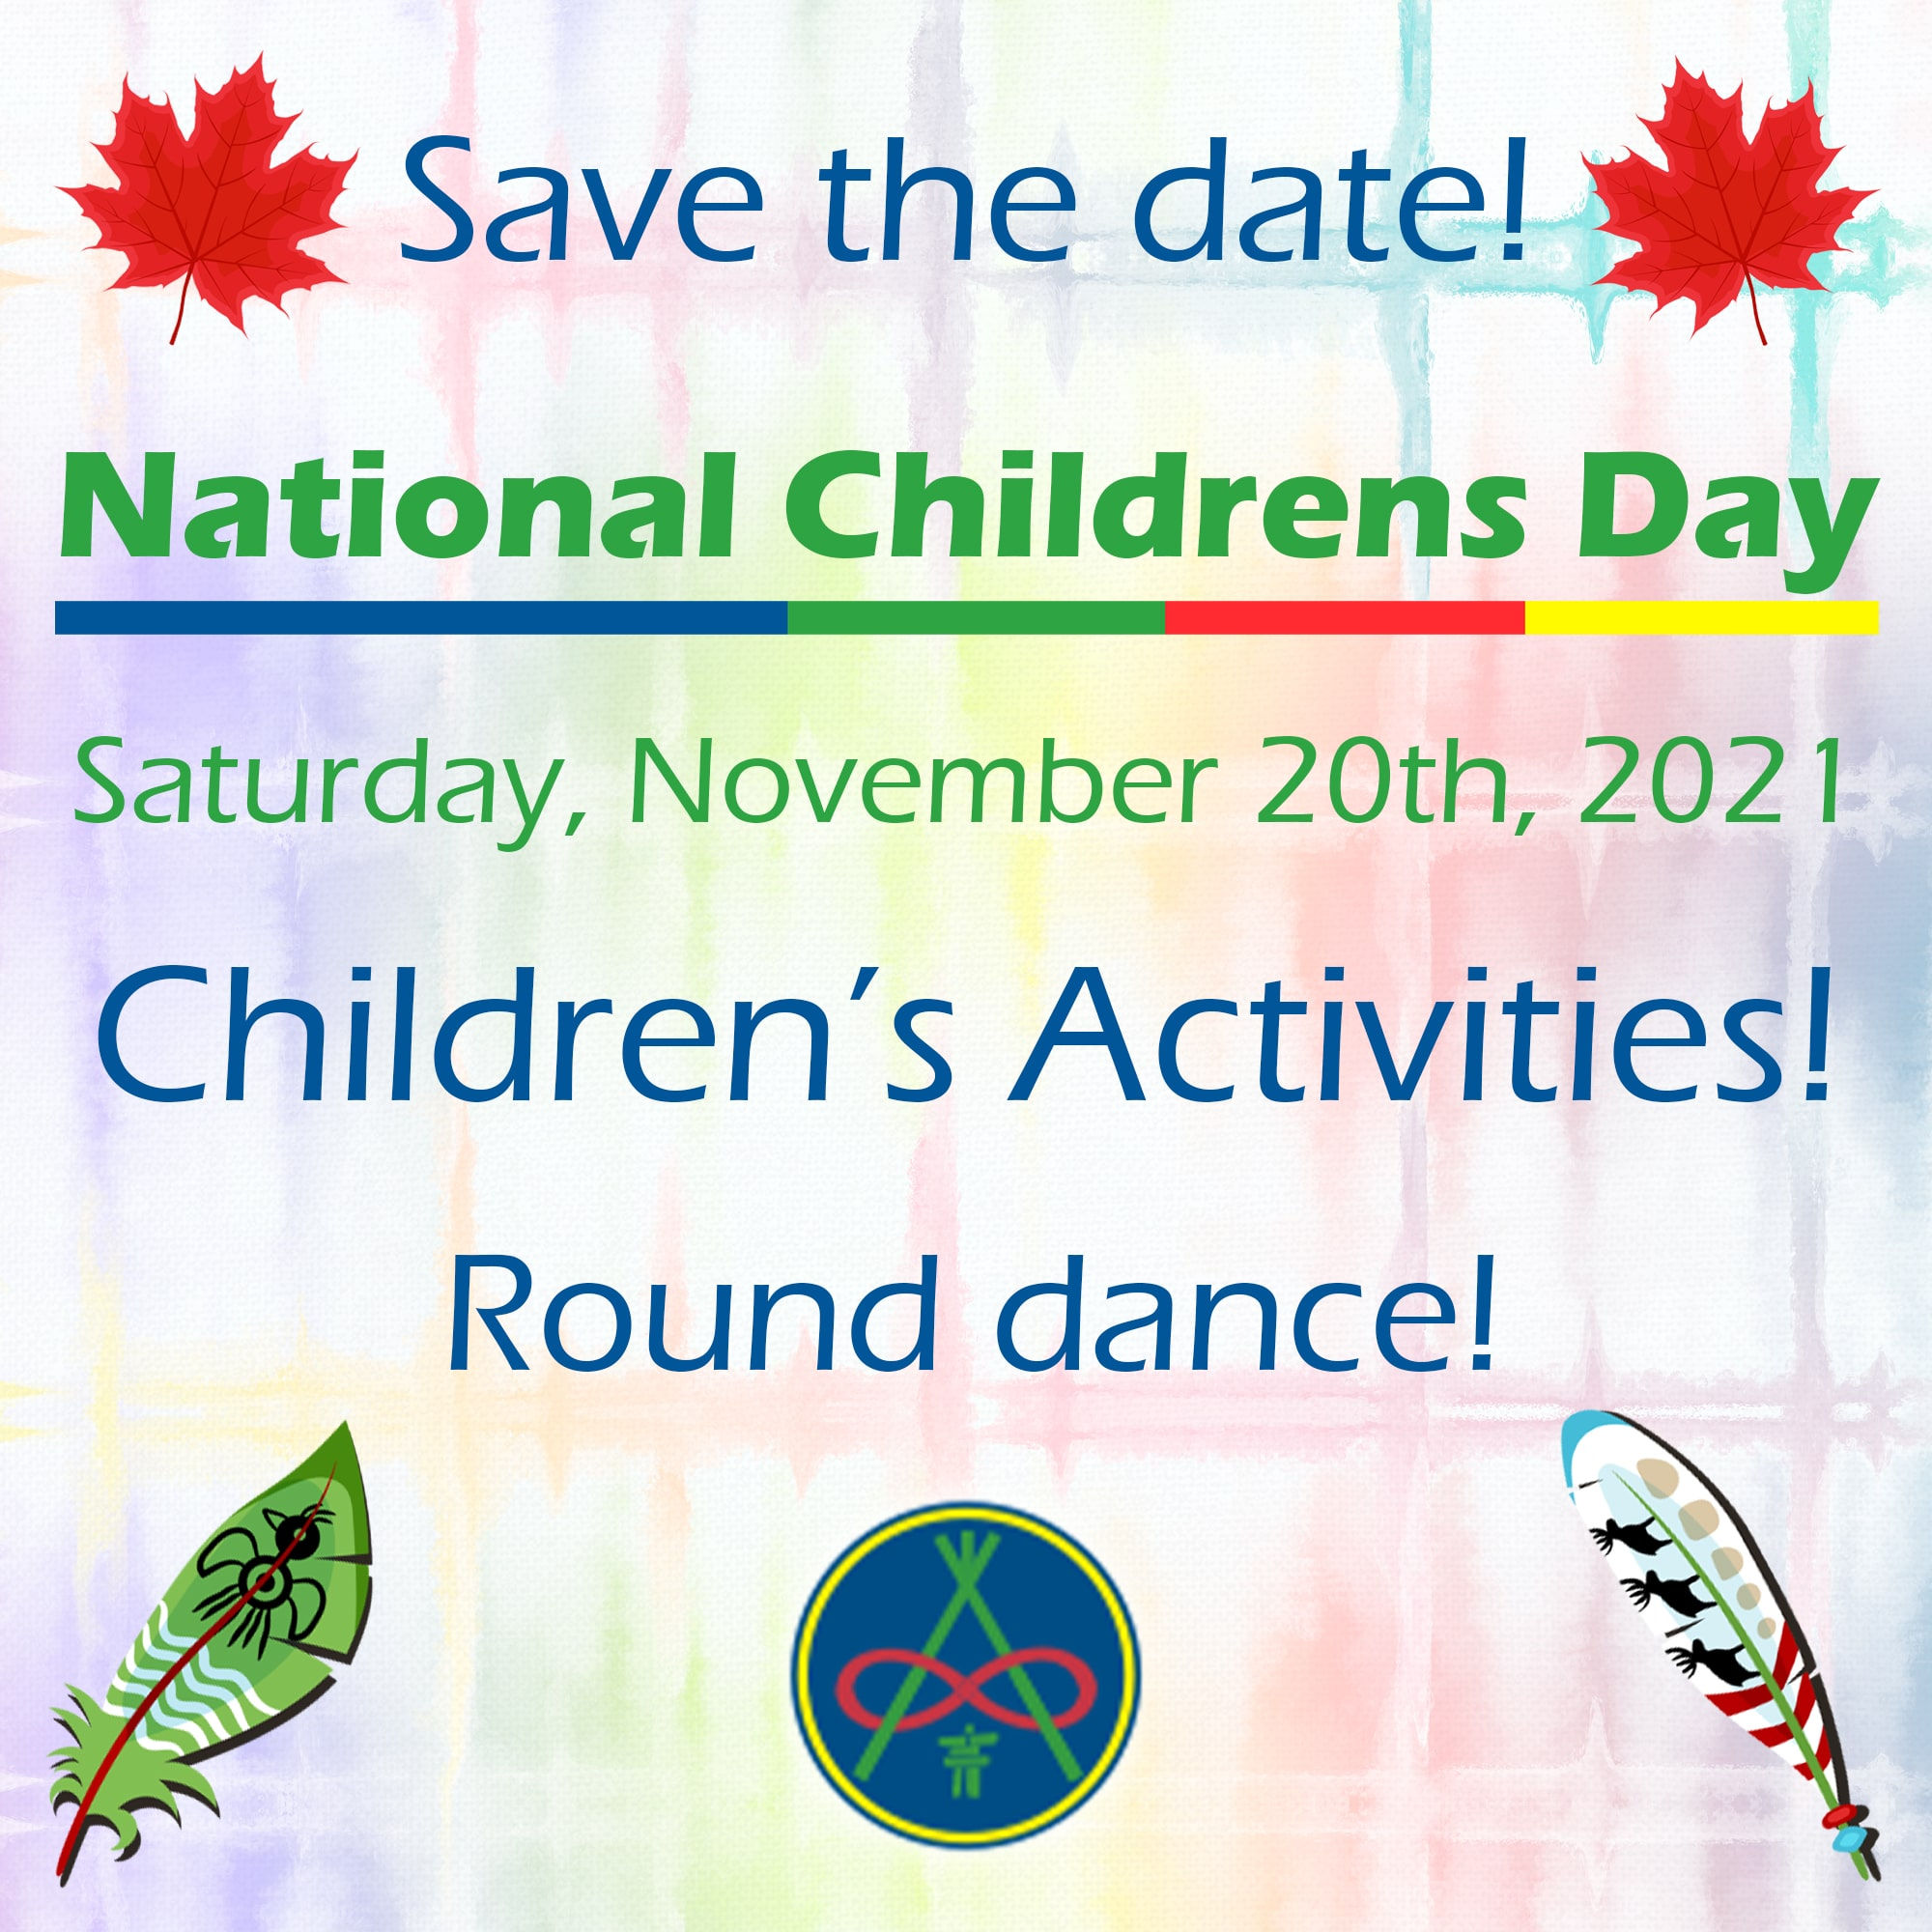 Save the Date! natinal childrens day 9 min